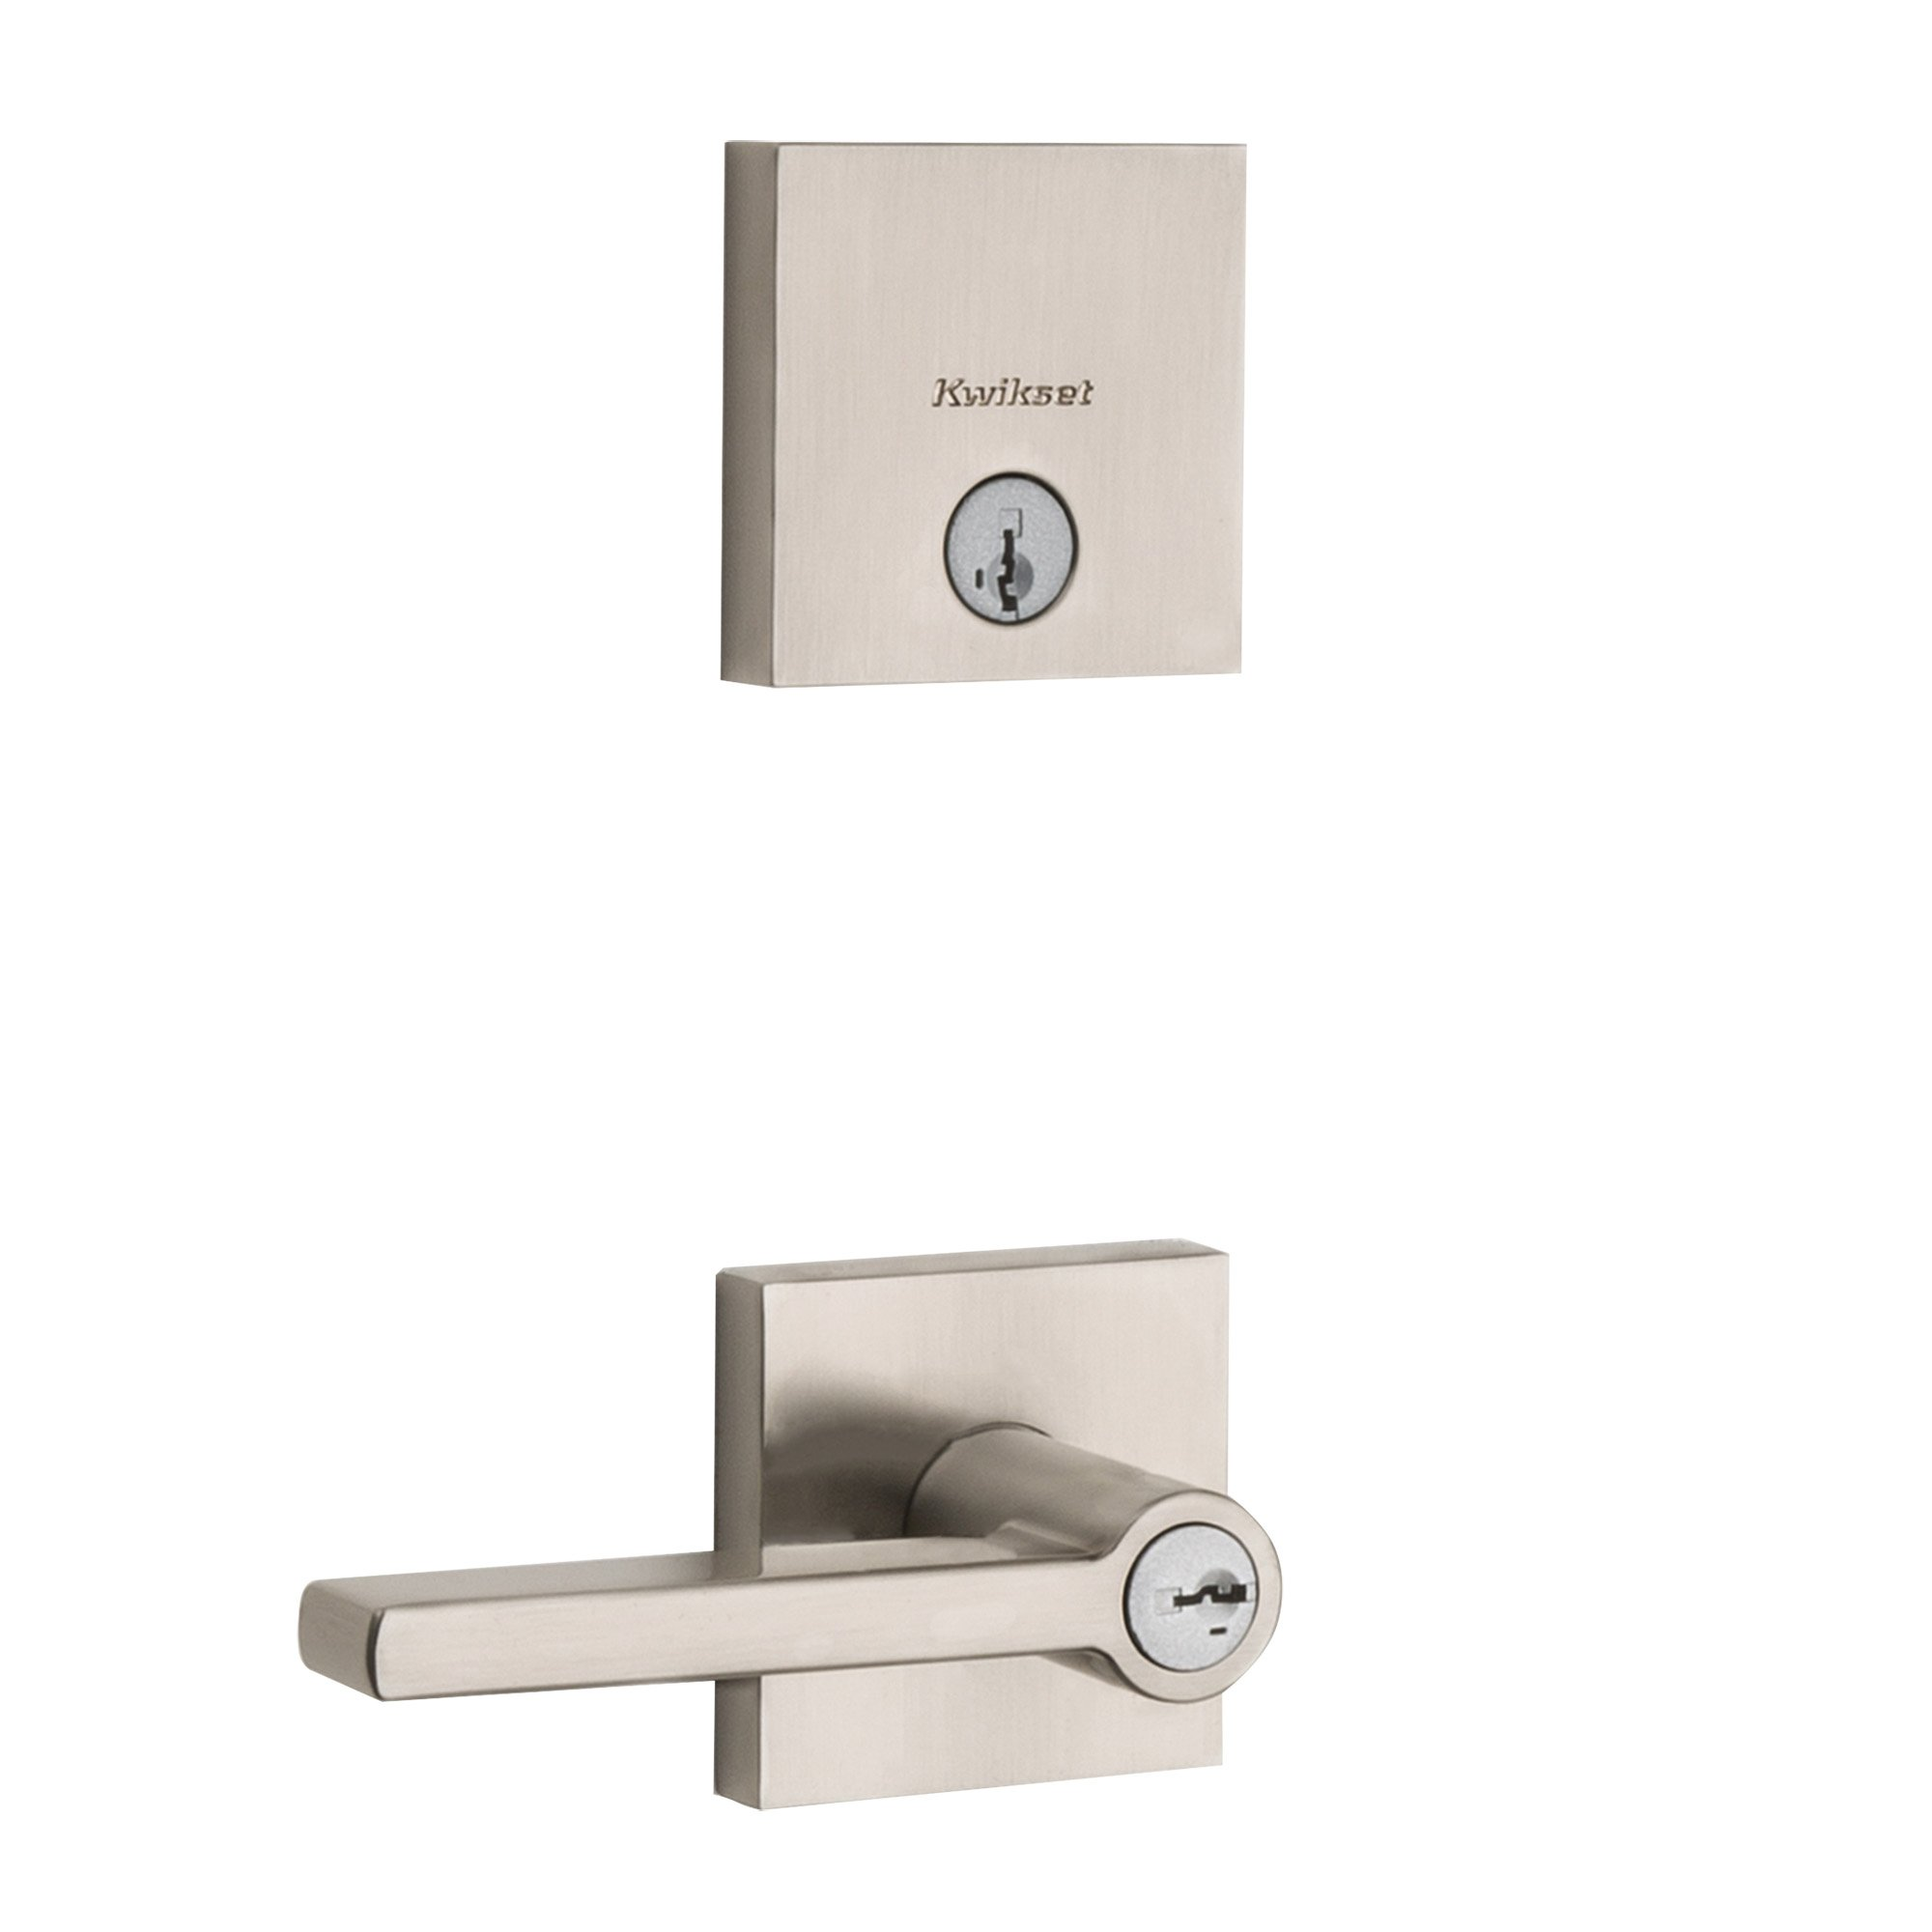 Kwikset 99910-060 Halifax Keyed Entry Lever and Downtown Single Cylinder Deadbolt Combo Pack featuring SmartKey Security in Satin Nickel by Kwikset